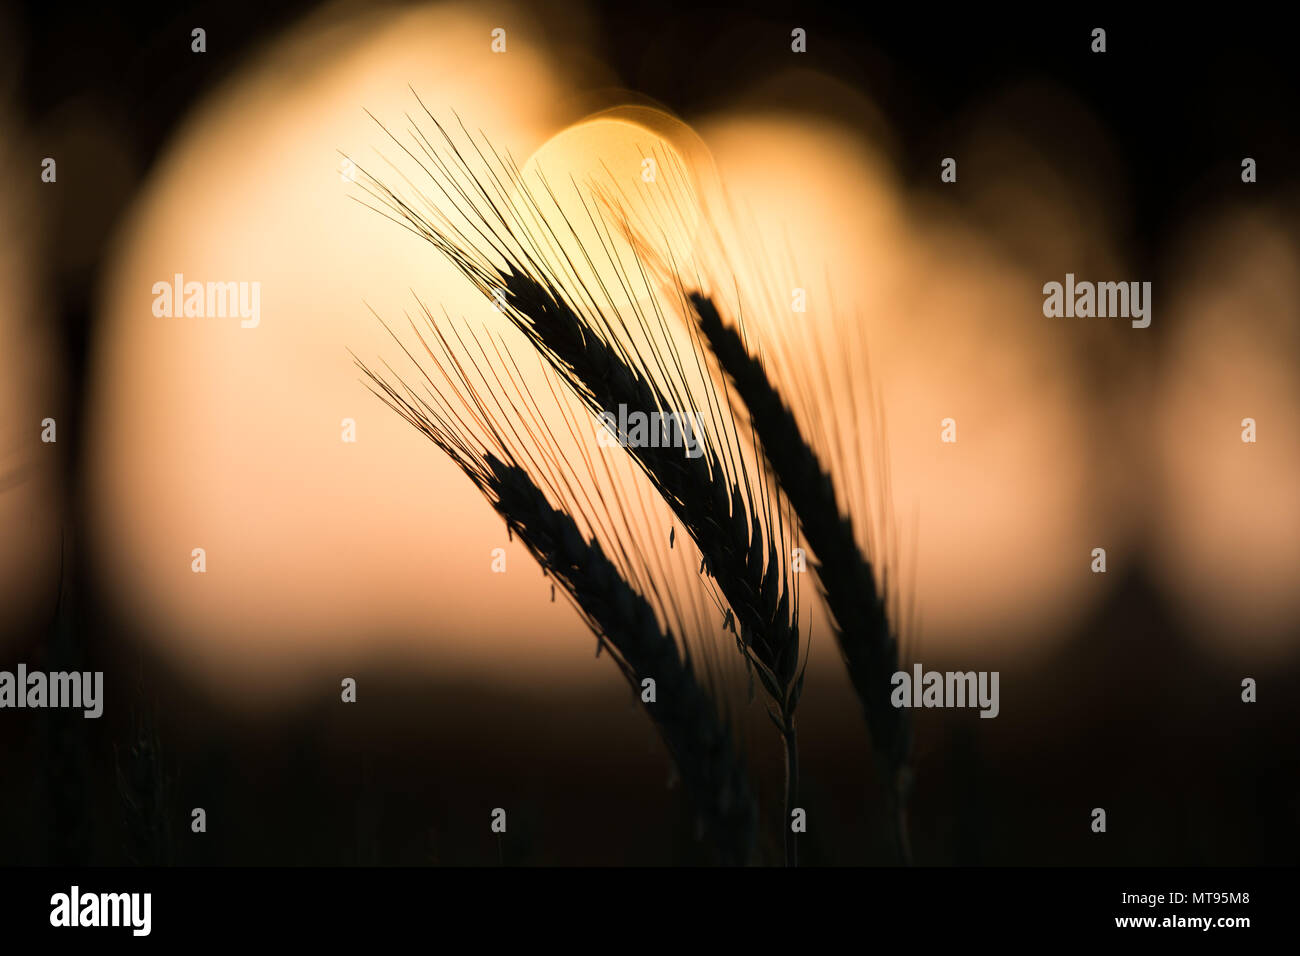 29 May 2018, Germany, Rehda-Wiedenbrueck: The sun rises behind a field of barley. Photo: Friso Gentsch/dpa - Stock Image